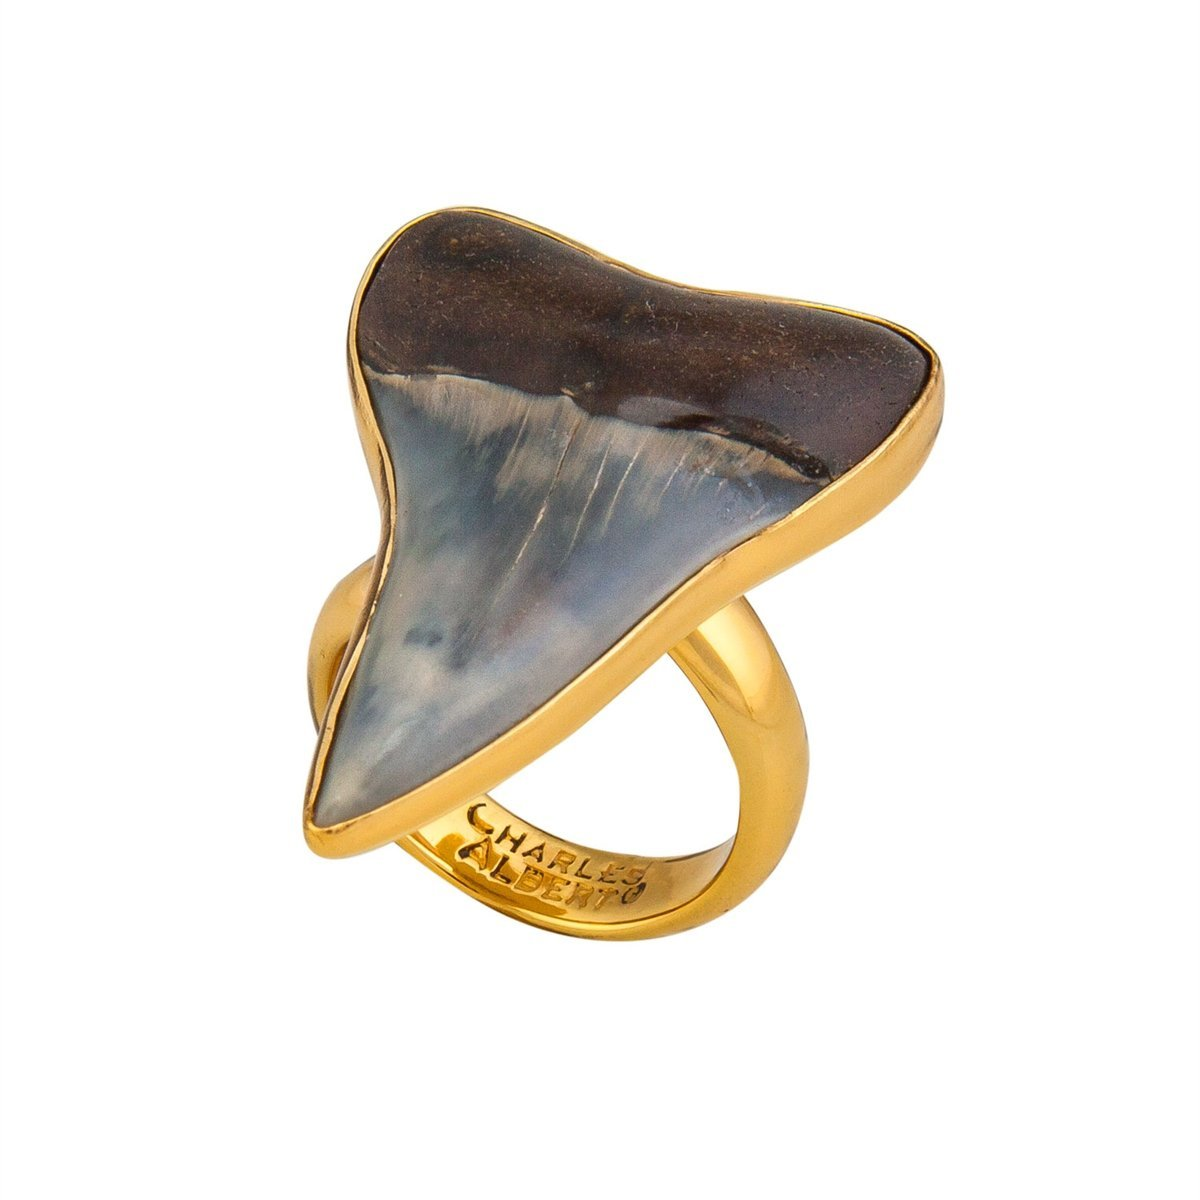 Alchemia Fossil Shark Tooth Adjustable Ring | Charles Albert Jewelry